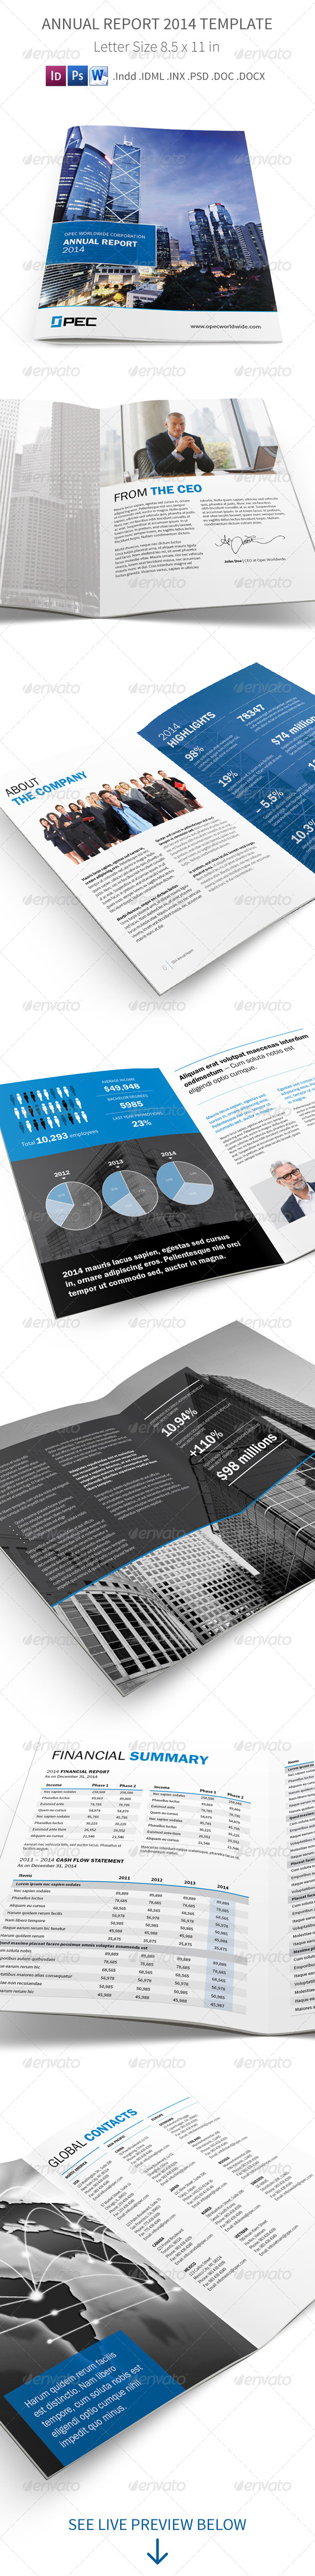 GraphicRiver Annual Report 2014 Template 7670317